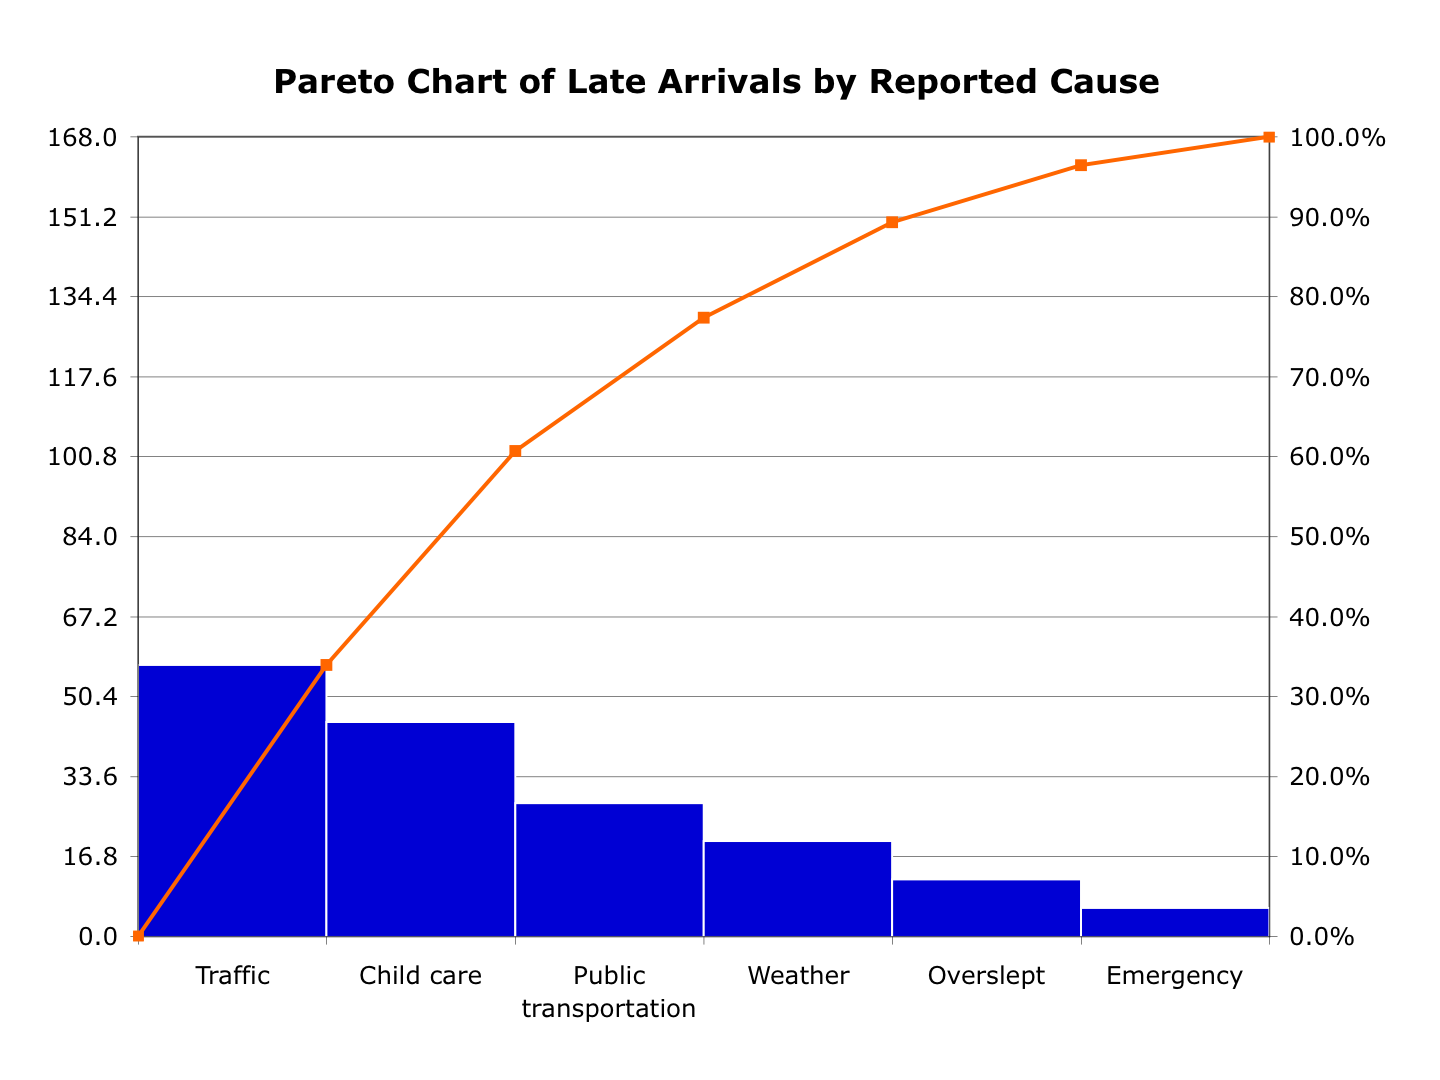 What does a pareto chart look like